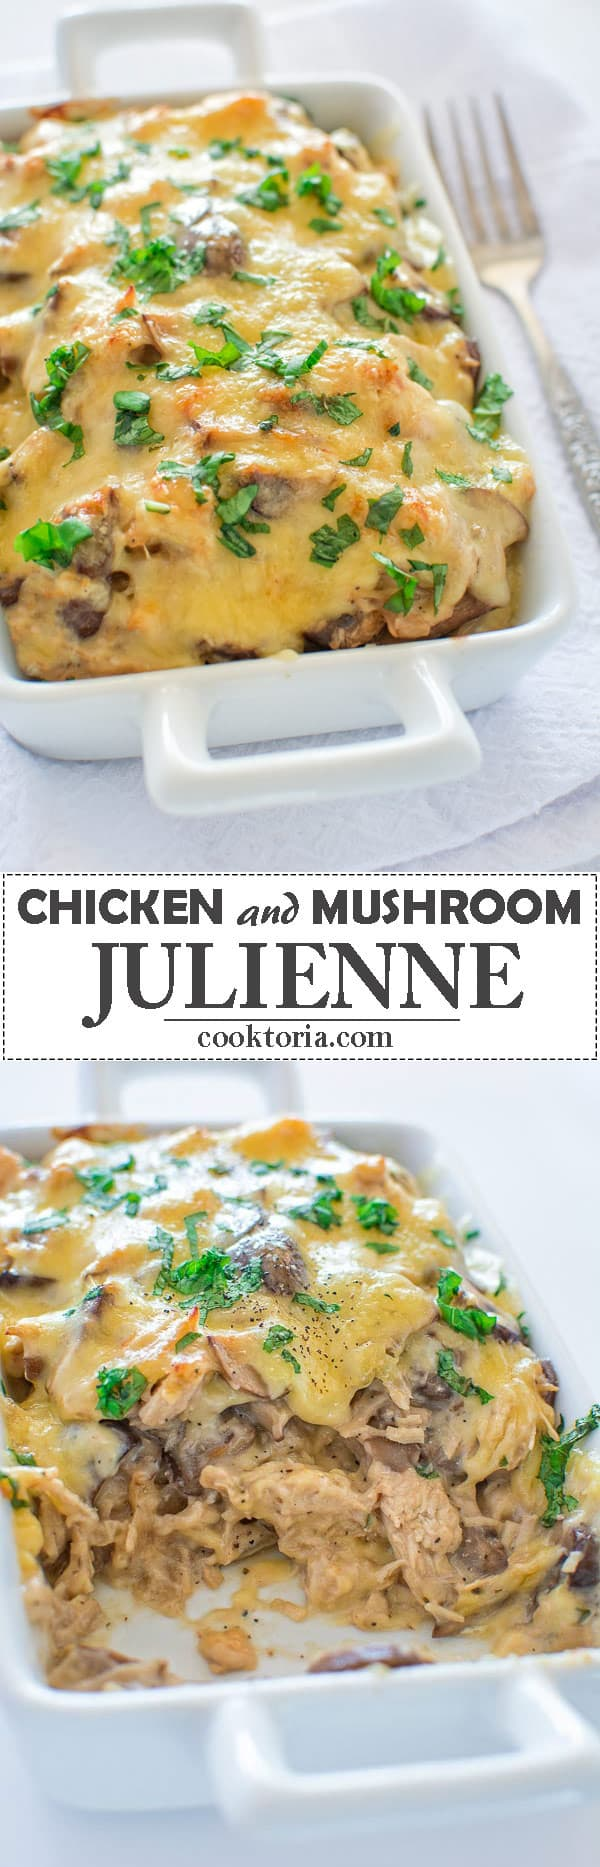 How to cook chicken julienne and mushrooms 39